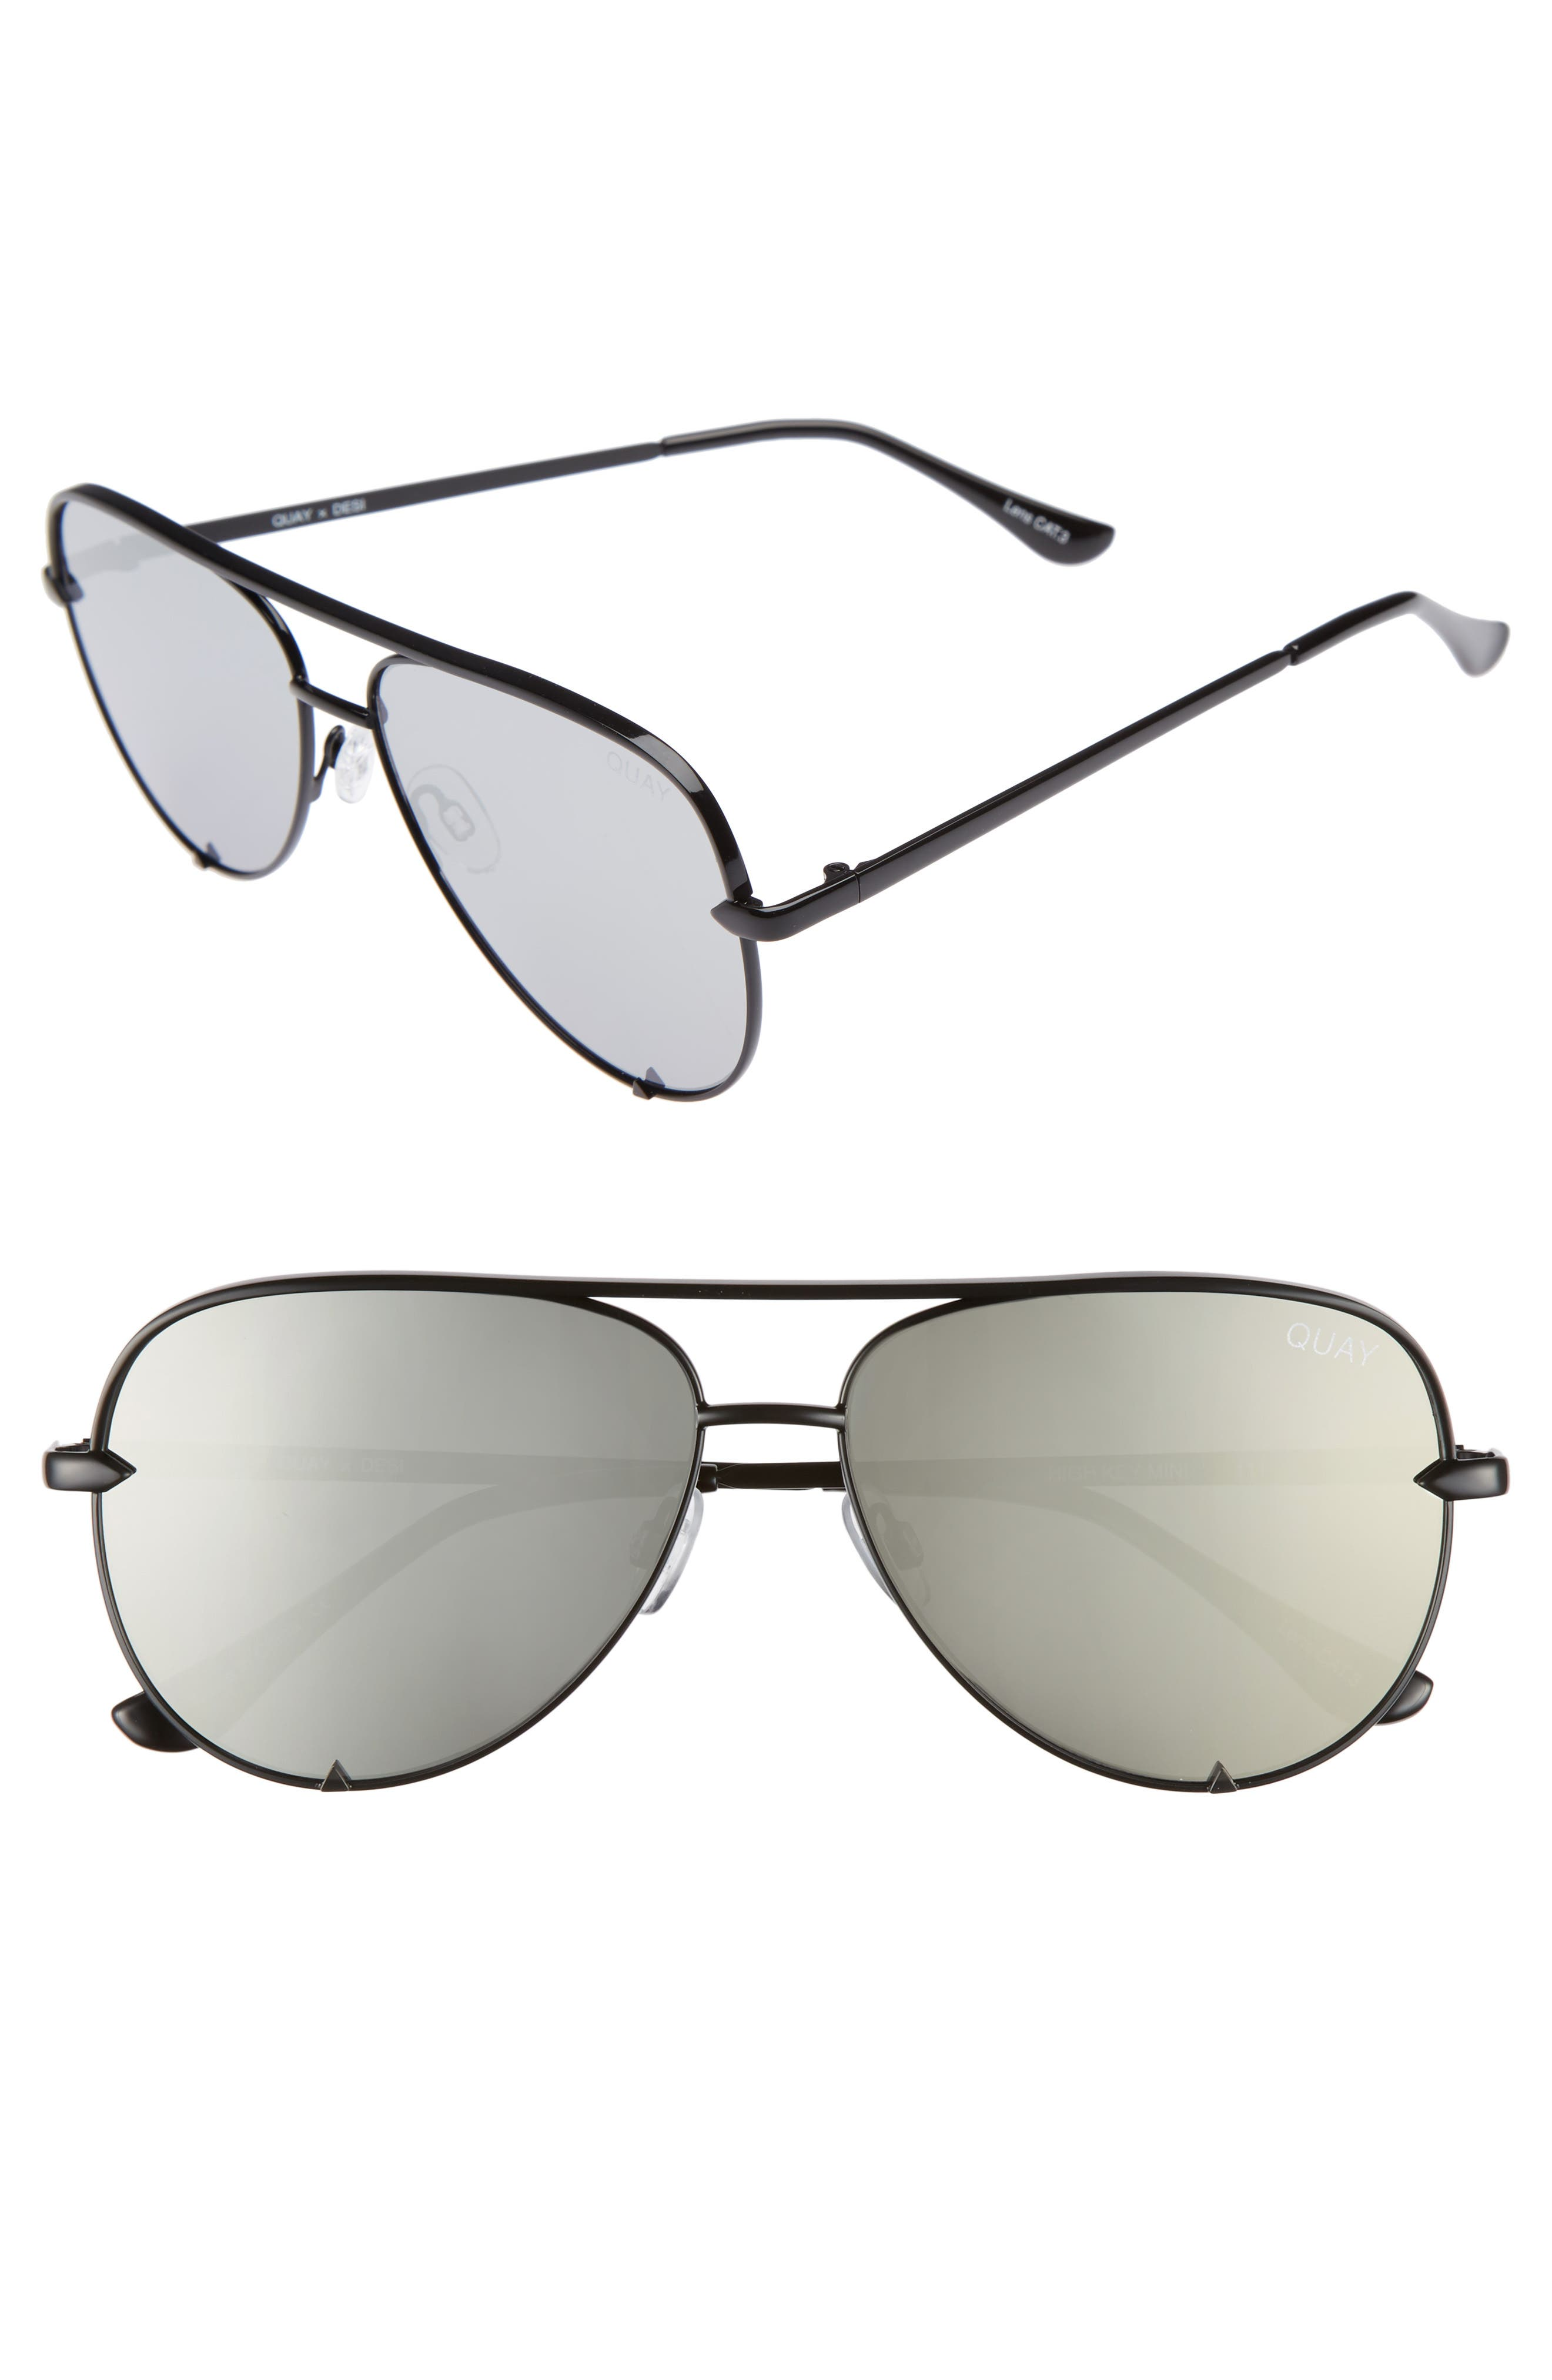 X Desi Perkins High Key Mini 57Mm Aviator Sunglasses - Black/ Silver